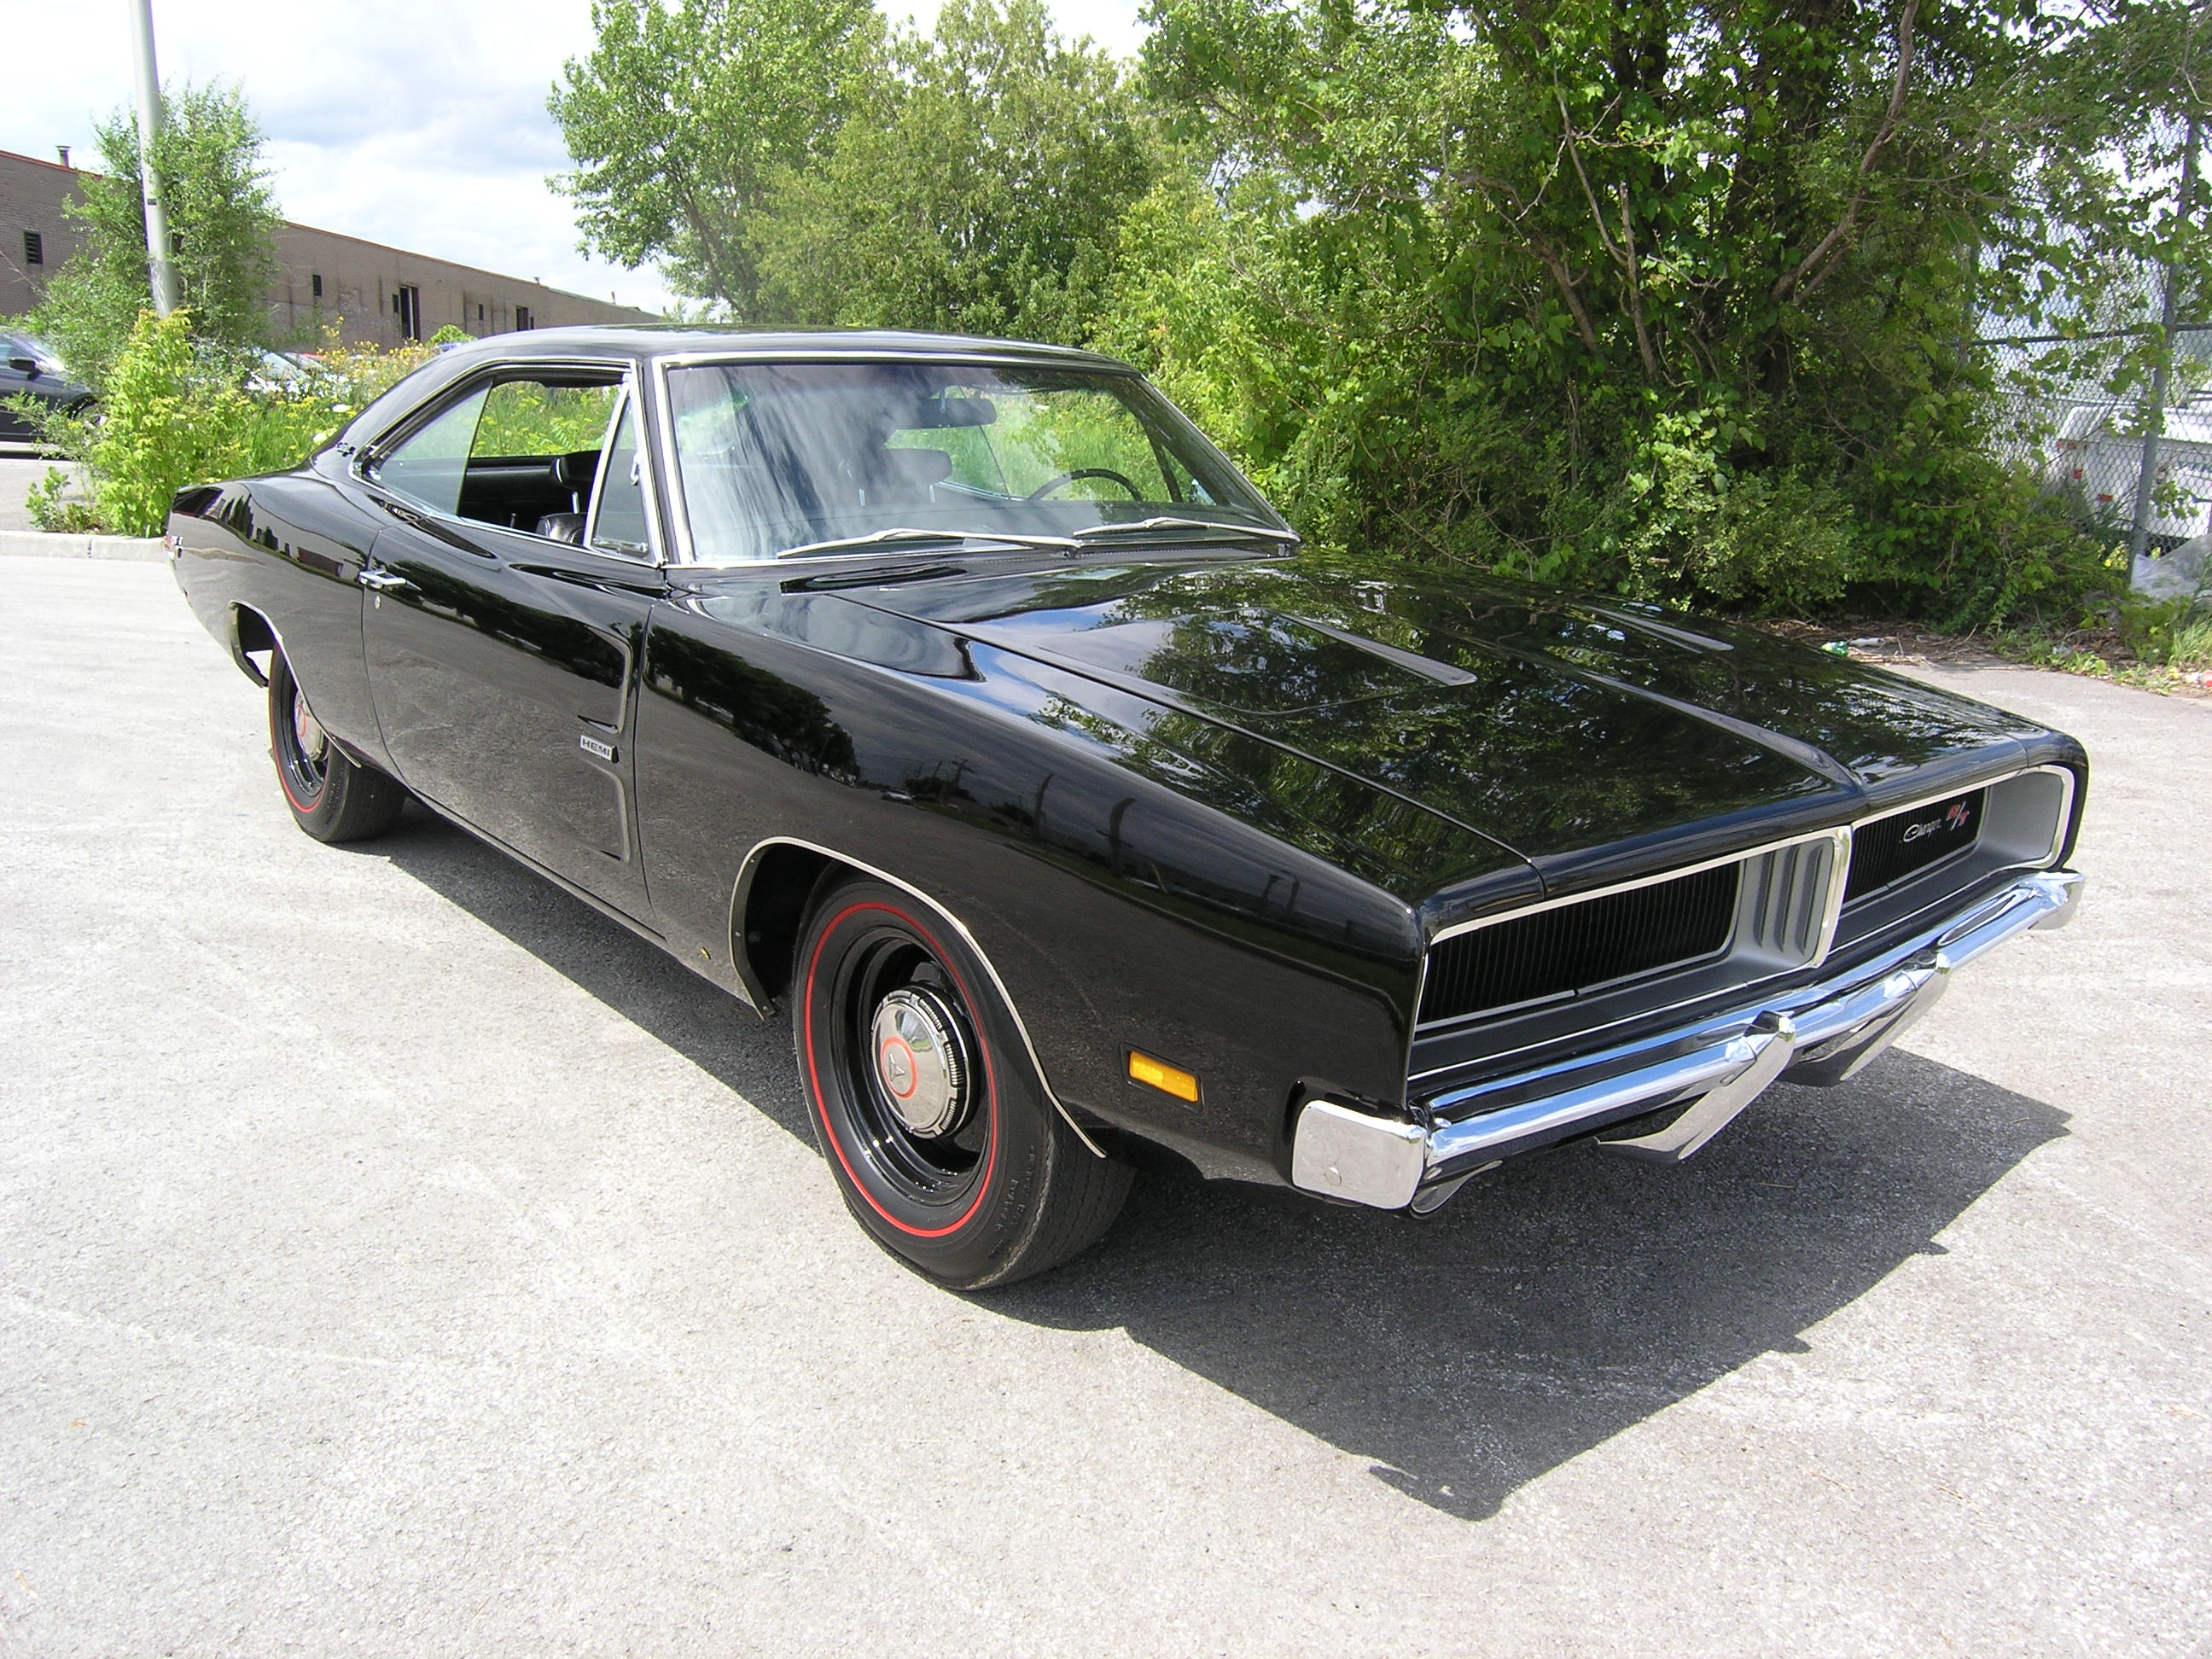 1969 dodge charger rt ebay. Black Bedroom Furniture Sets. Home Design Ideas